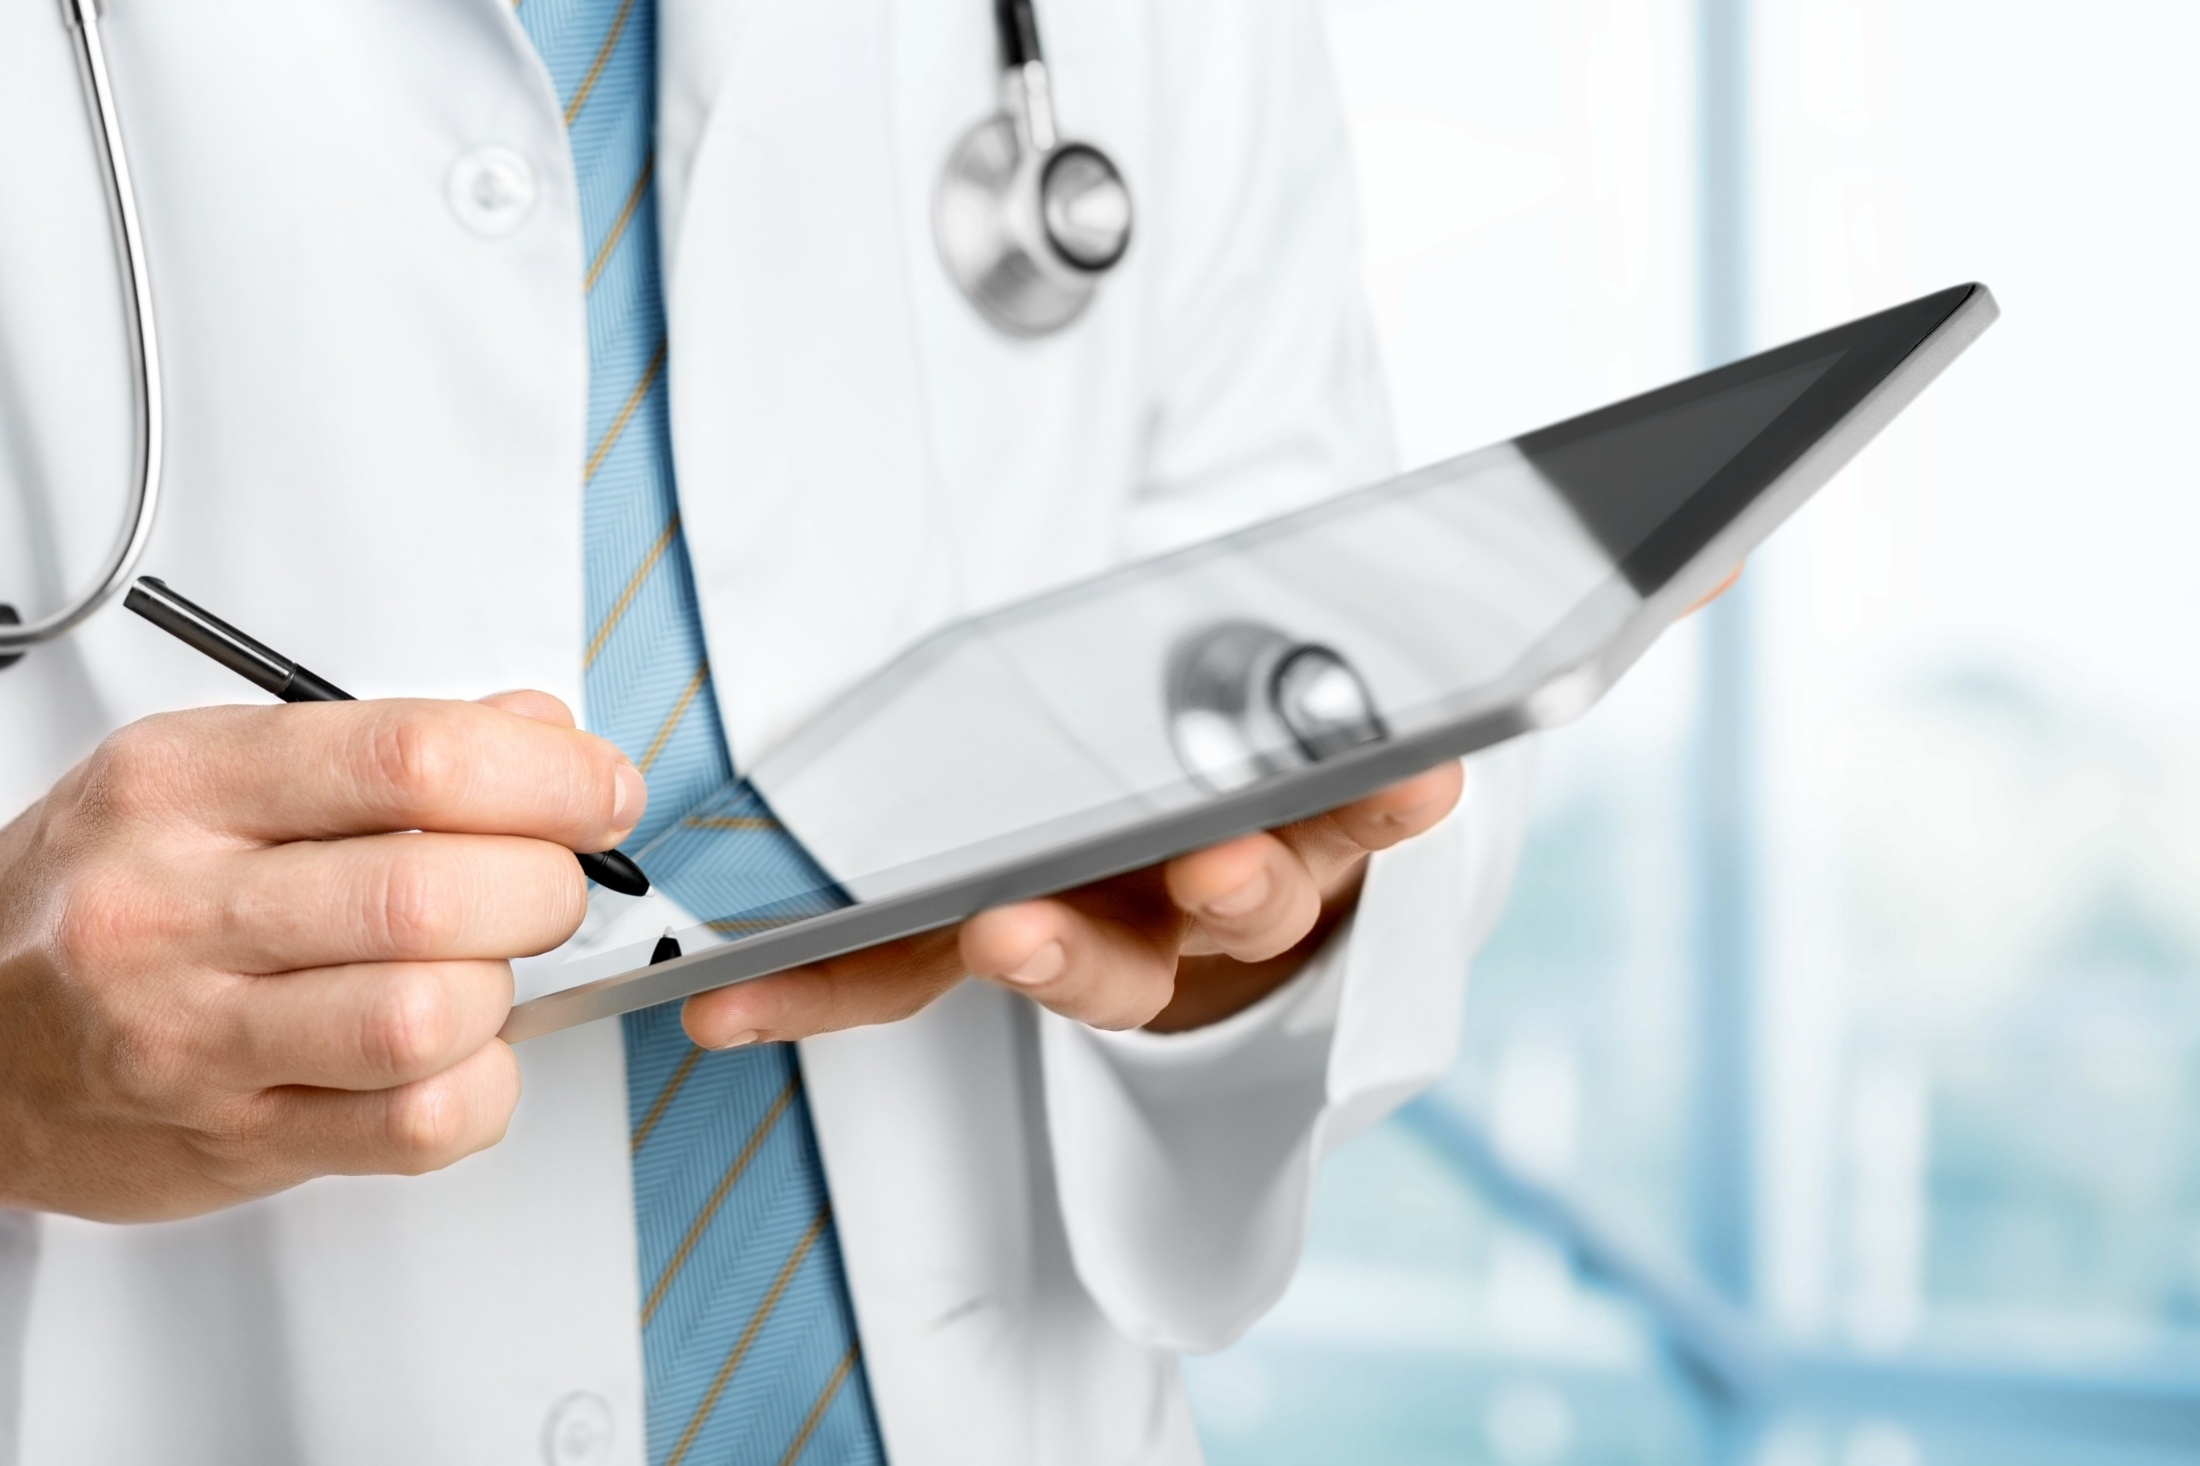 Healthcare_iPad_Stylus-788811-edited.jpg